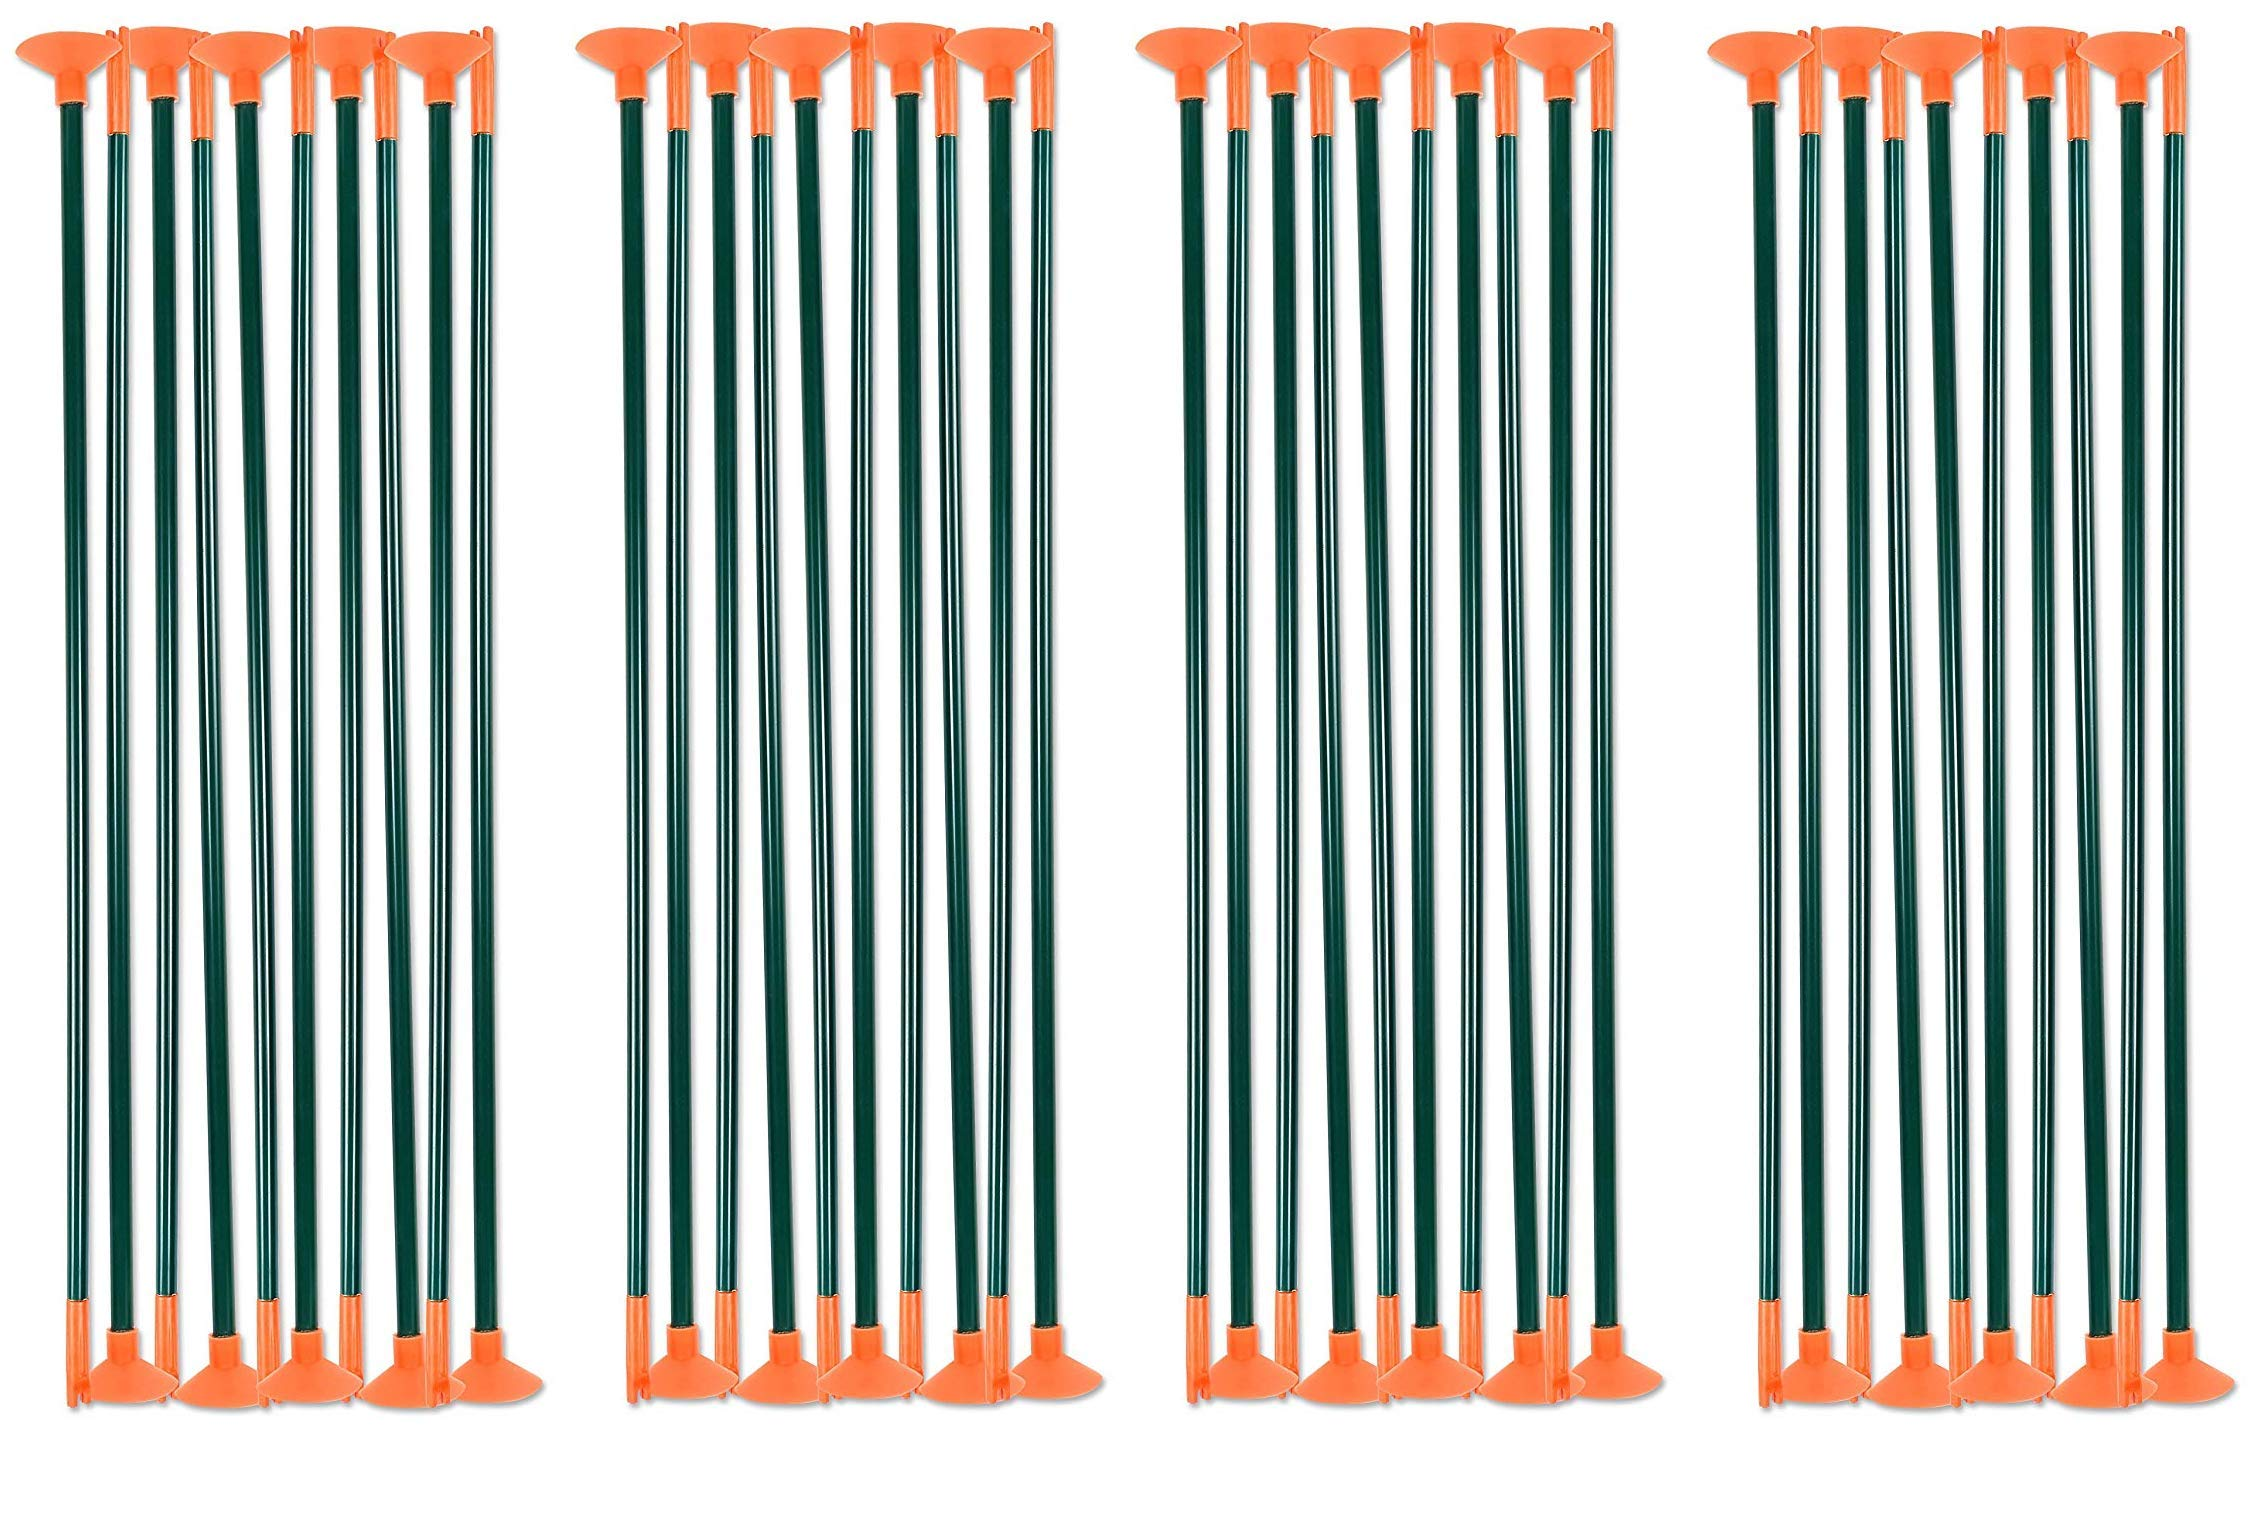 Sunny Days Entertainment Maxx Action Hunting Series 10-Pack Replacement Arrows (Fоur Расk) by Sunny Days Entertainment (Image #1)